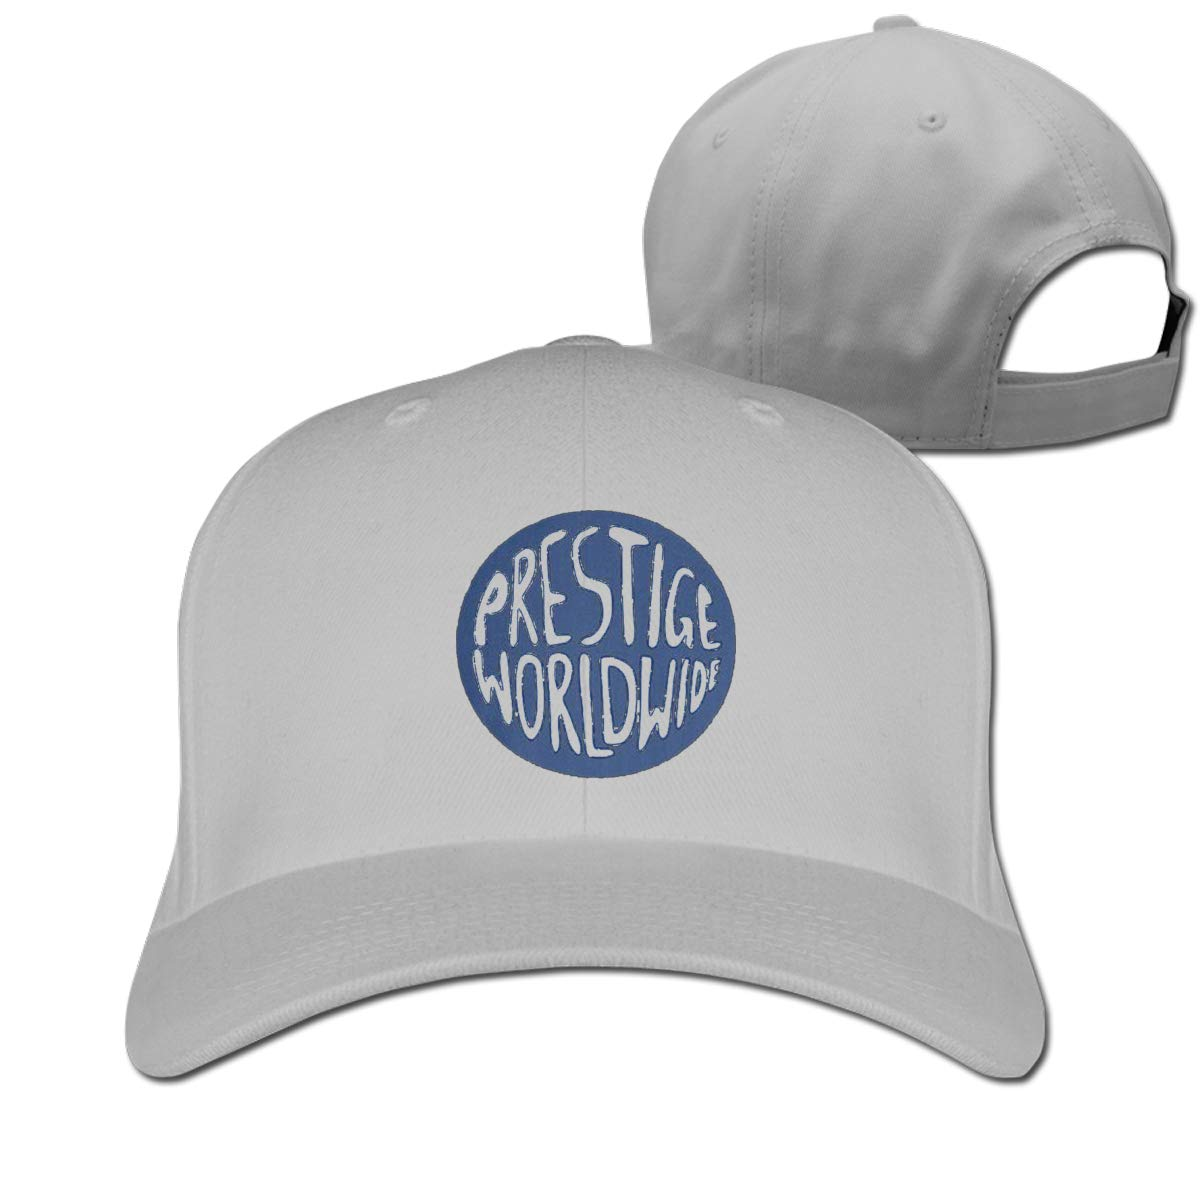 Prestige Worldwide Fashion Adjustable Cotton Baseball Caps Trucker Driver Hat Outdoor Cap Gray